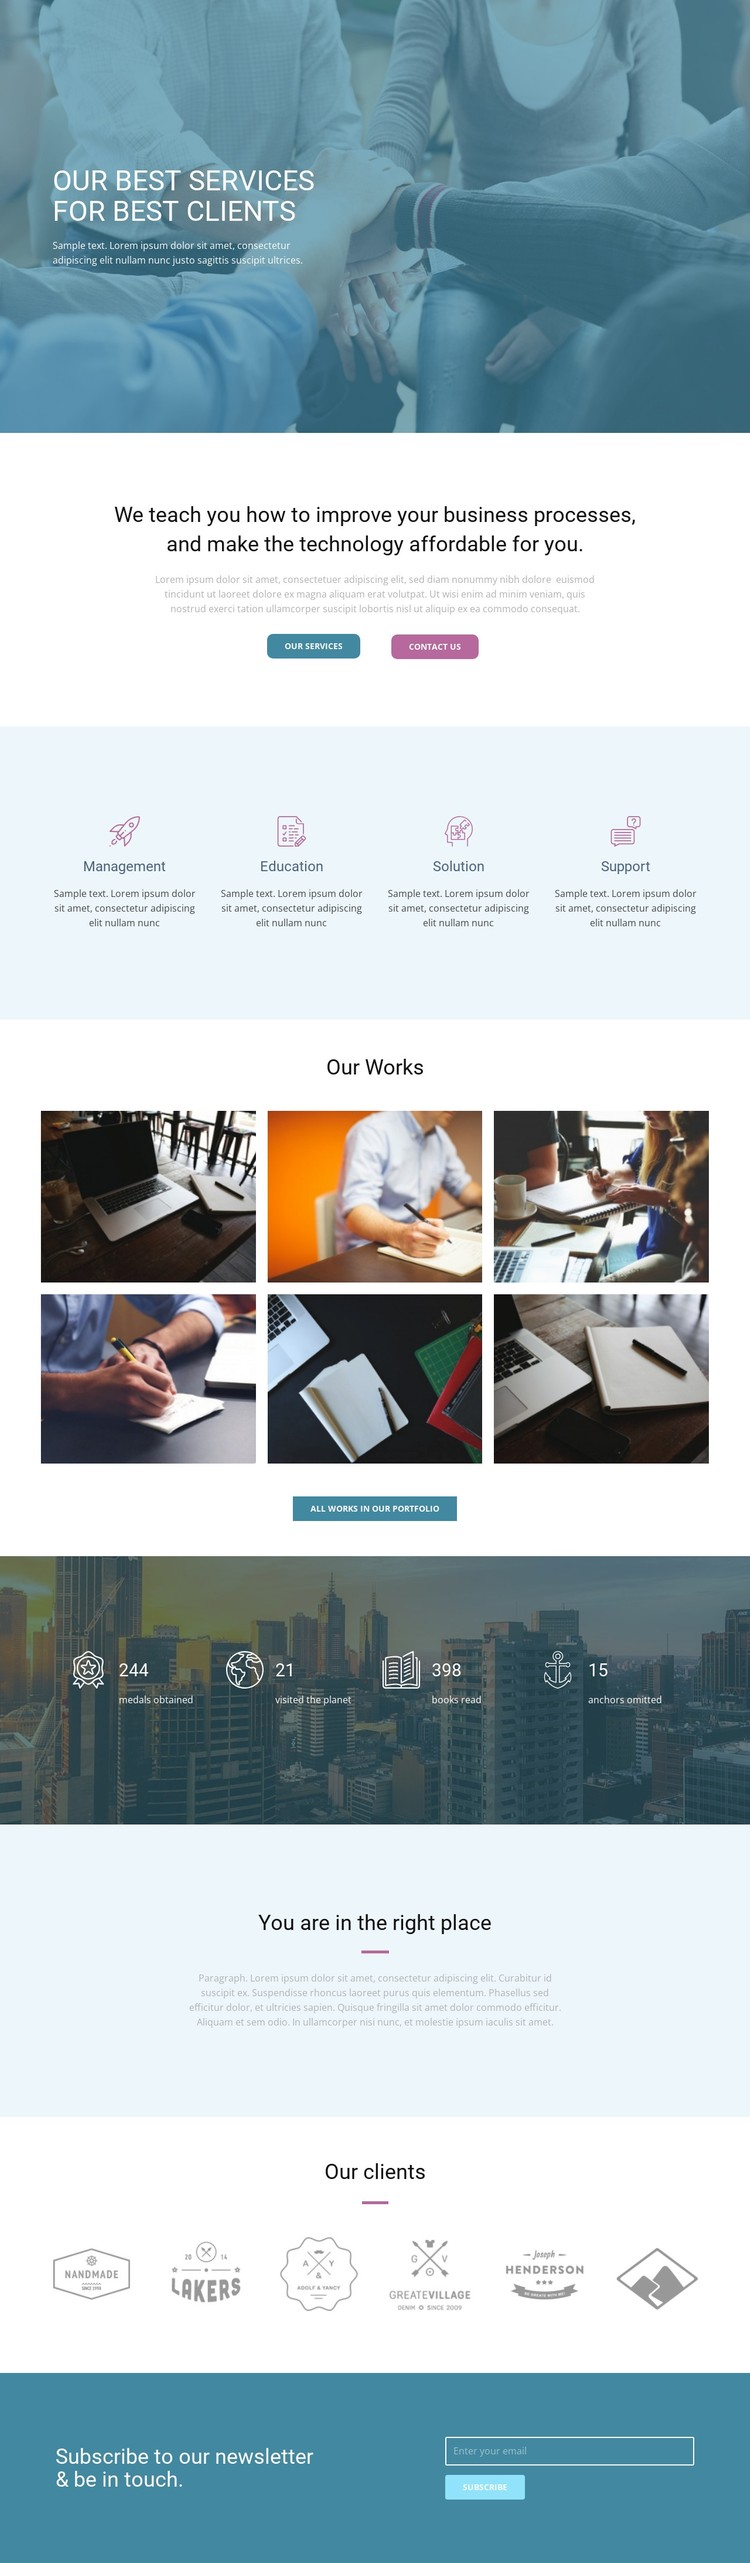 Best services for clients WordPress Template